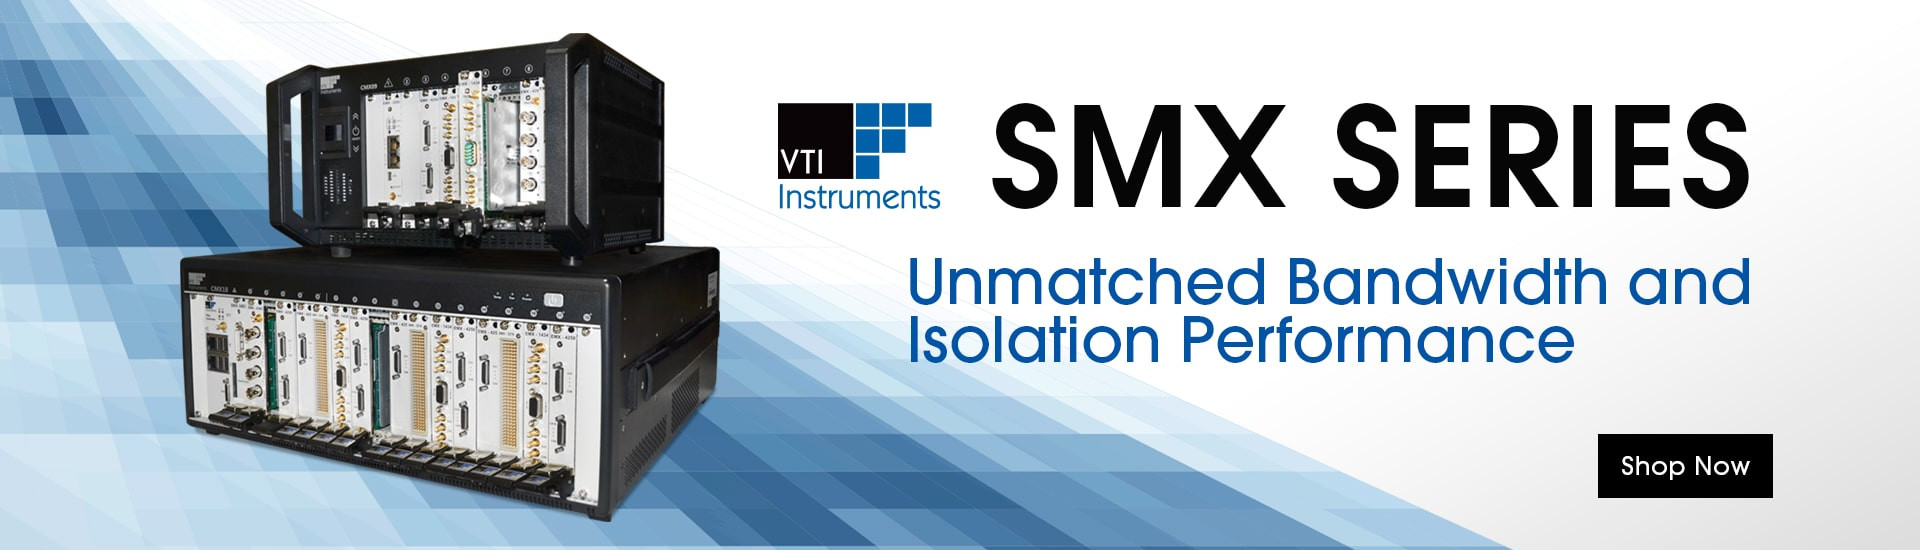 VTI Instruments SMX Series: Unmatched Bandwidth and Isolation Performance. Shop Now.